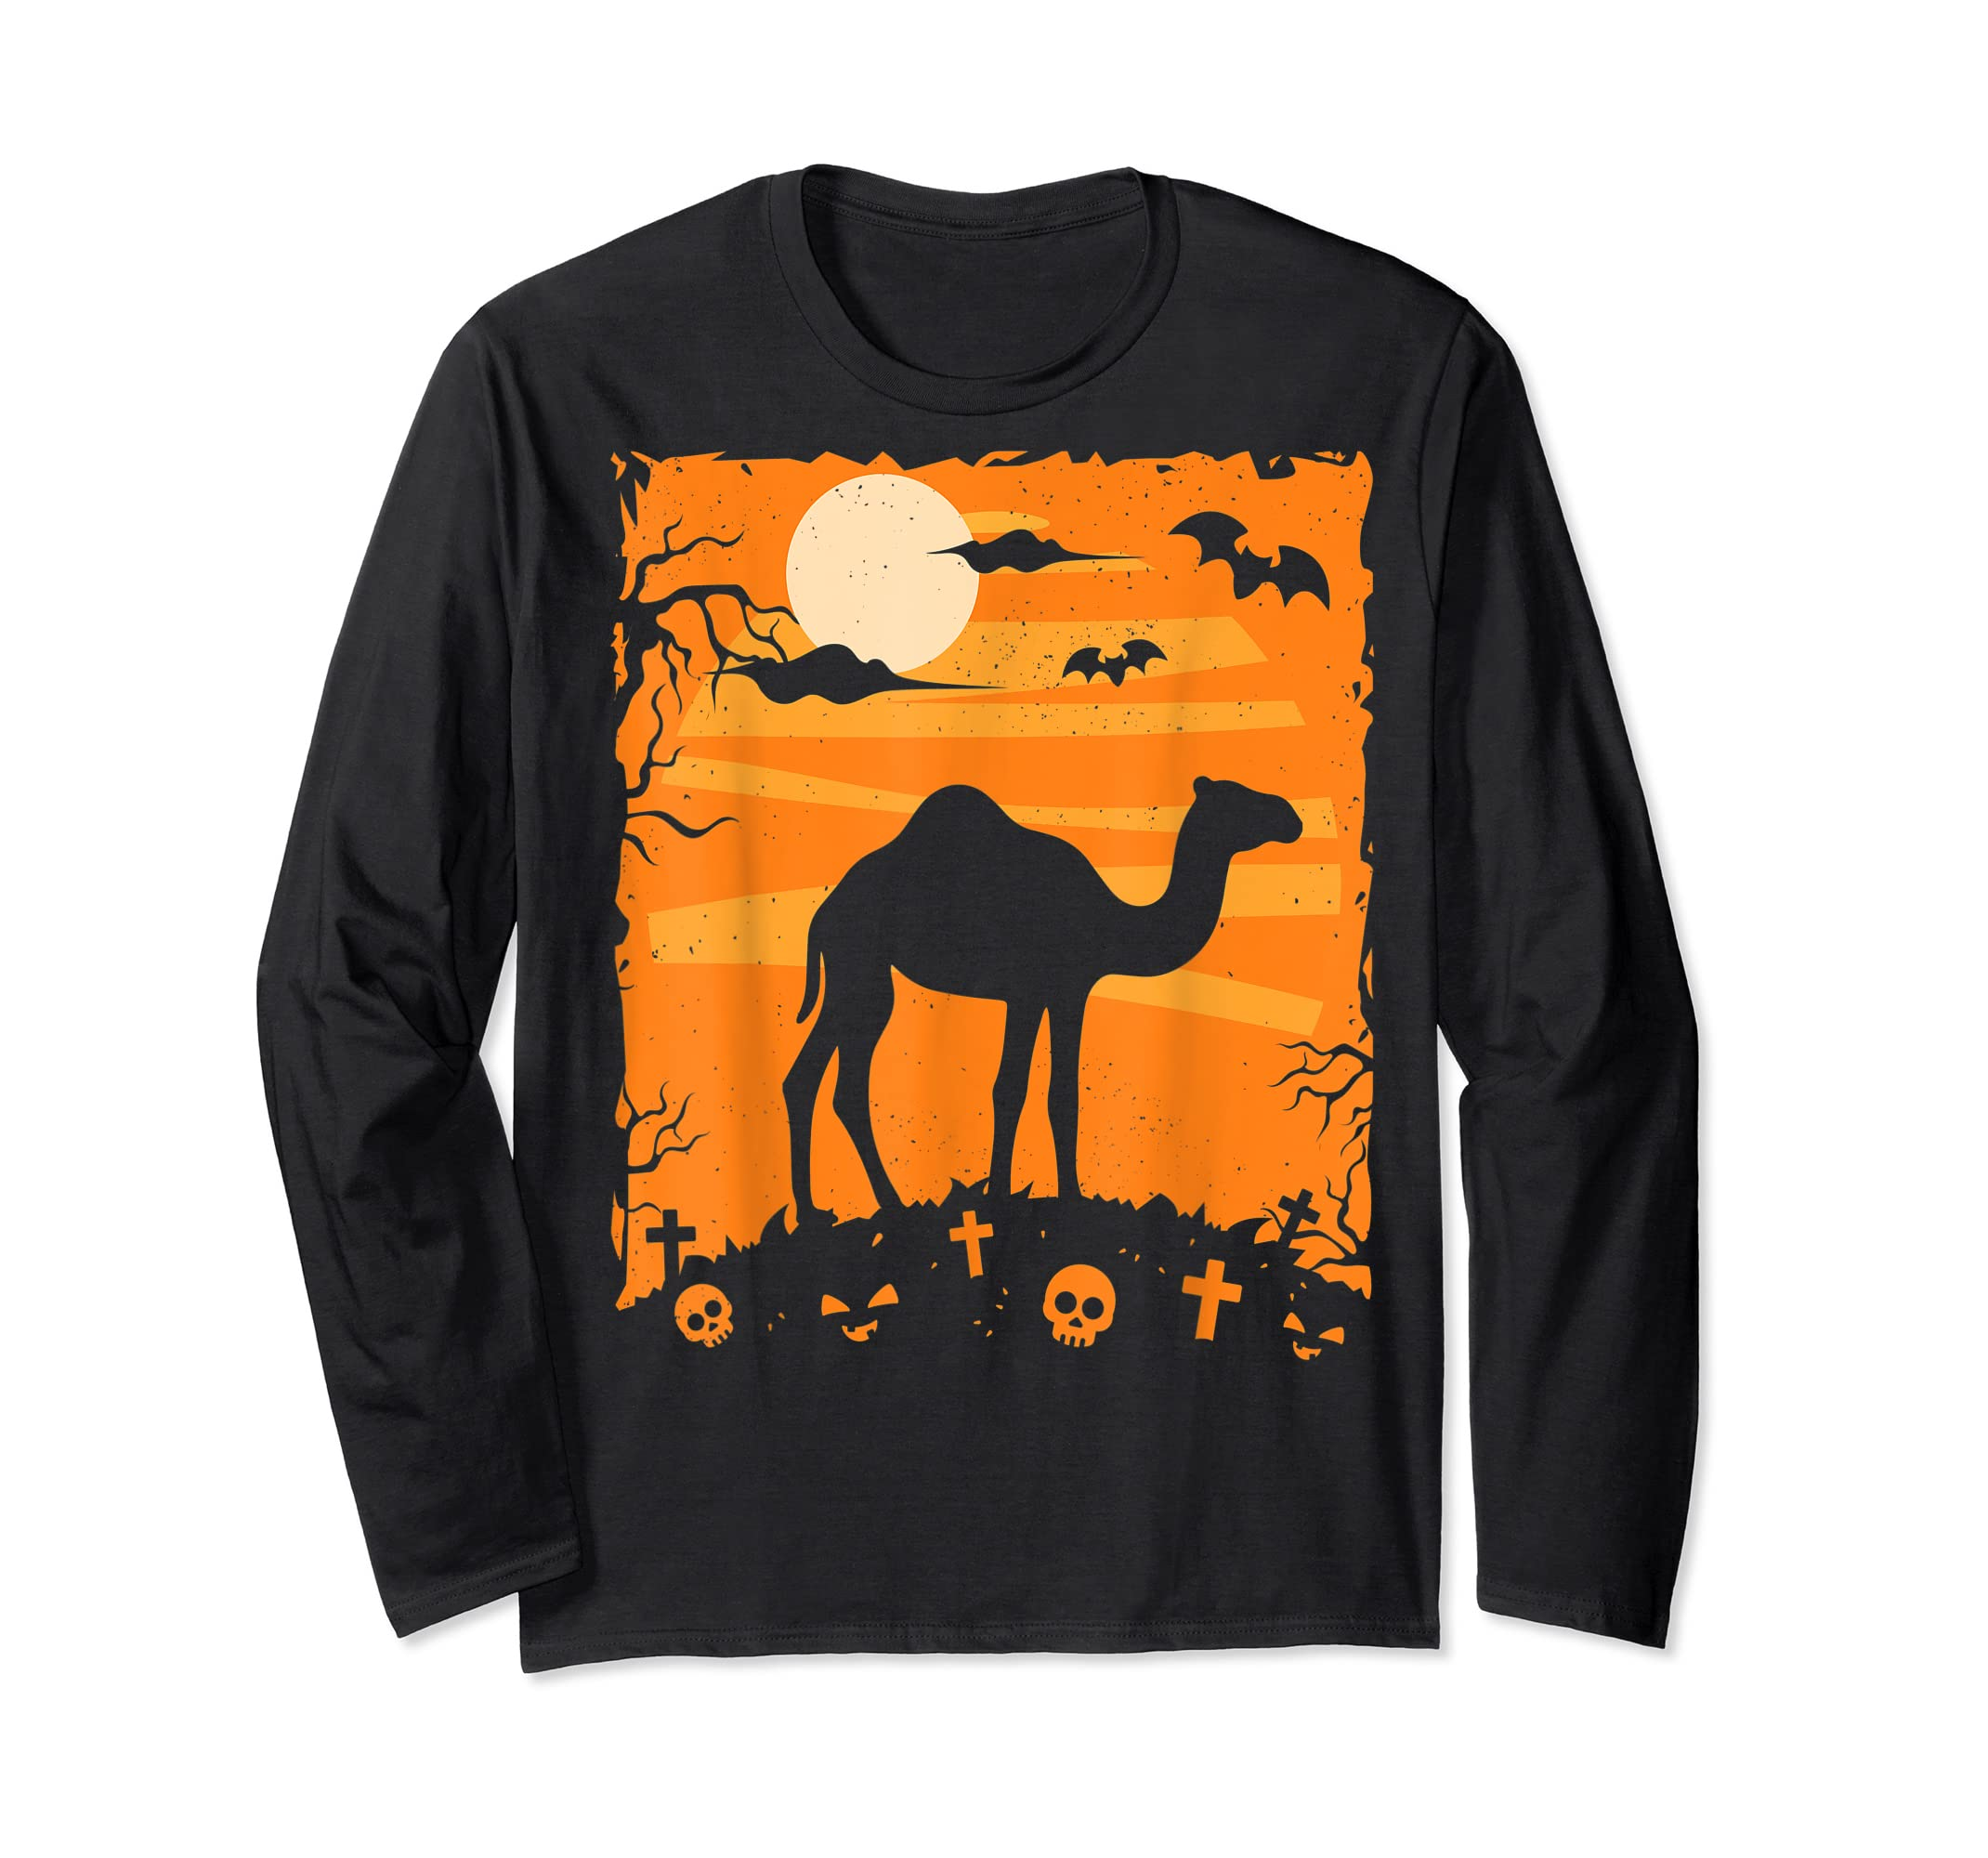 Camel Halloween Costume Animal Funny Pumpkin Outfit Gift T-Shirt-Long Sleeve-Black